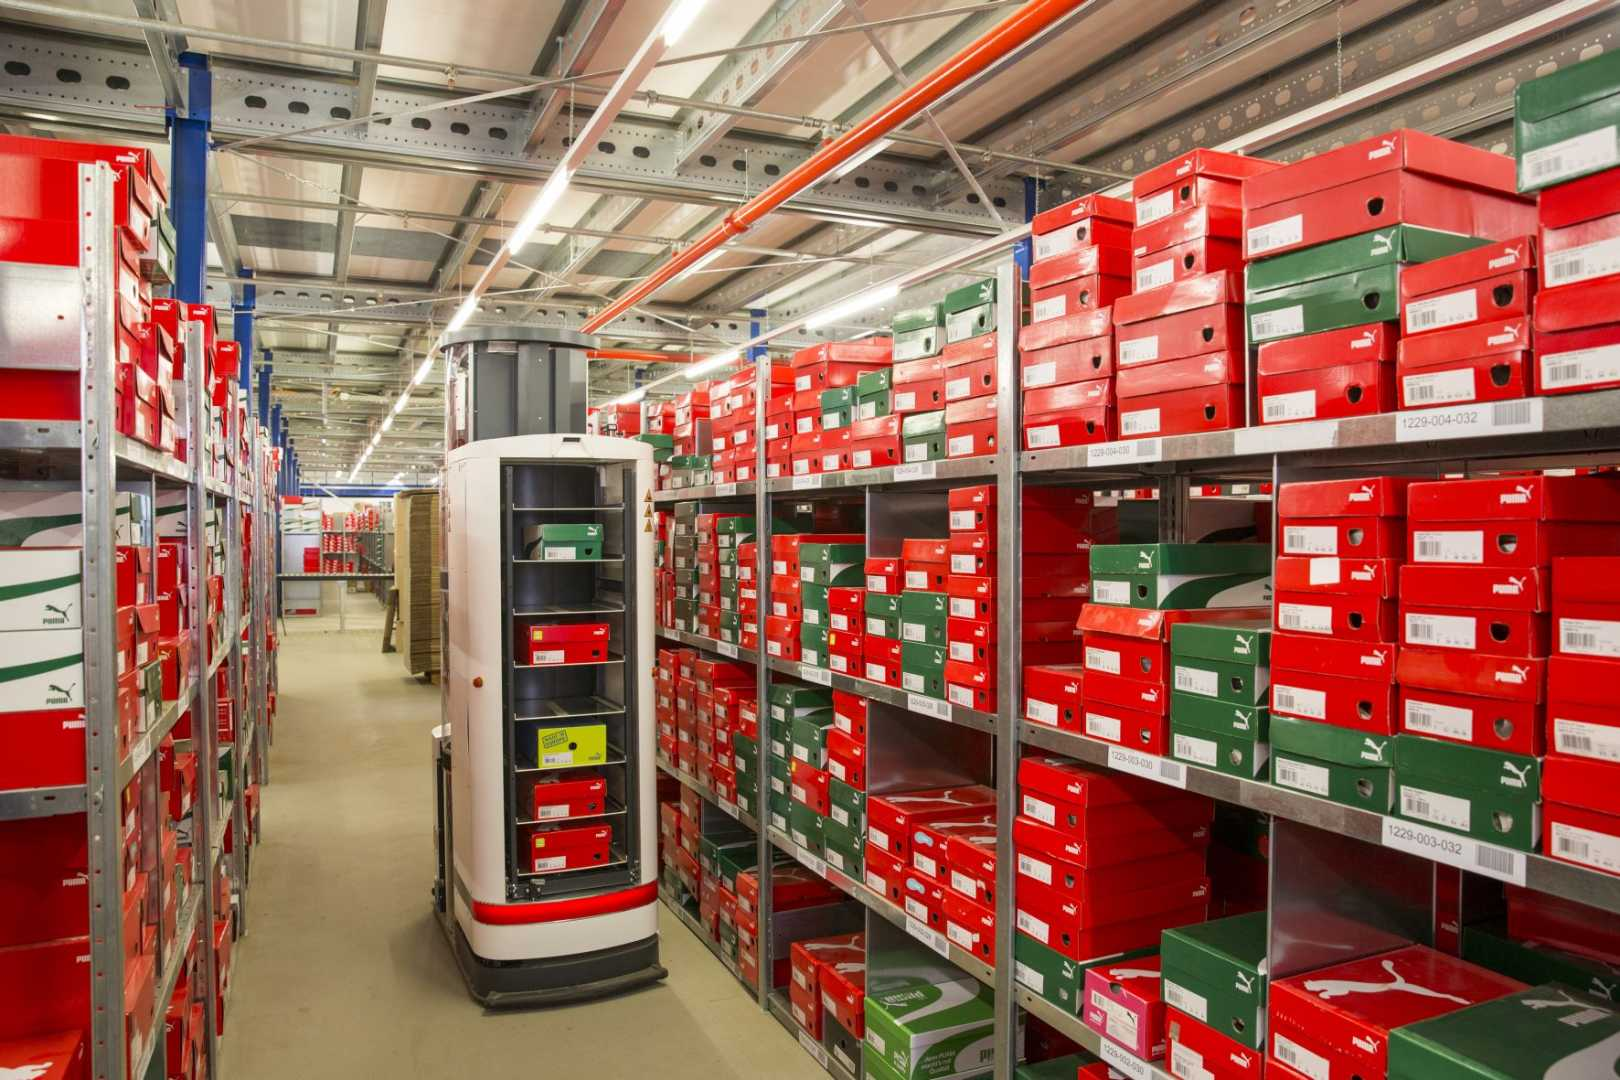 Intelligent Warehouse - TORU was built as a perception-controlled robot, which enables the system to learn on the spot independently - image courtesy of ITG